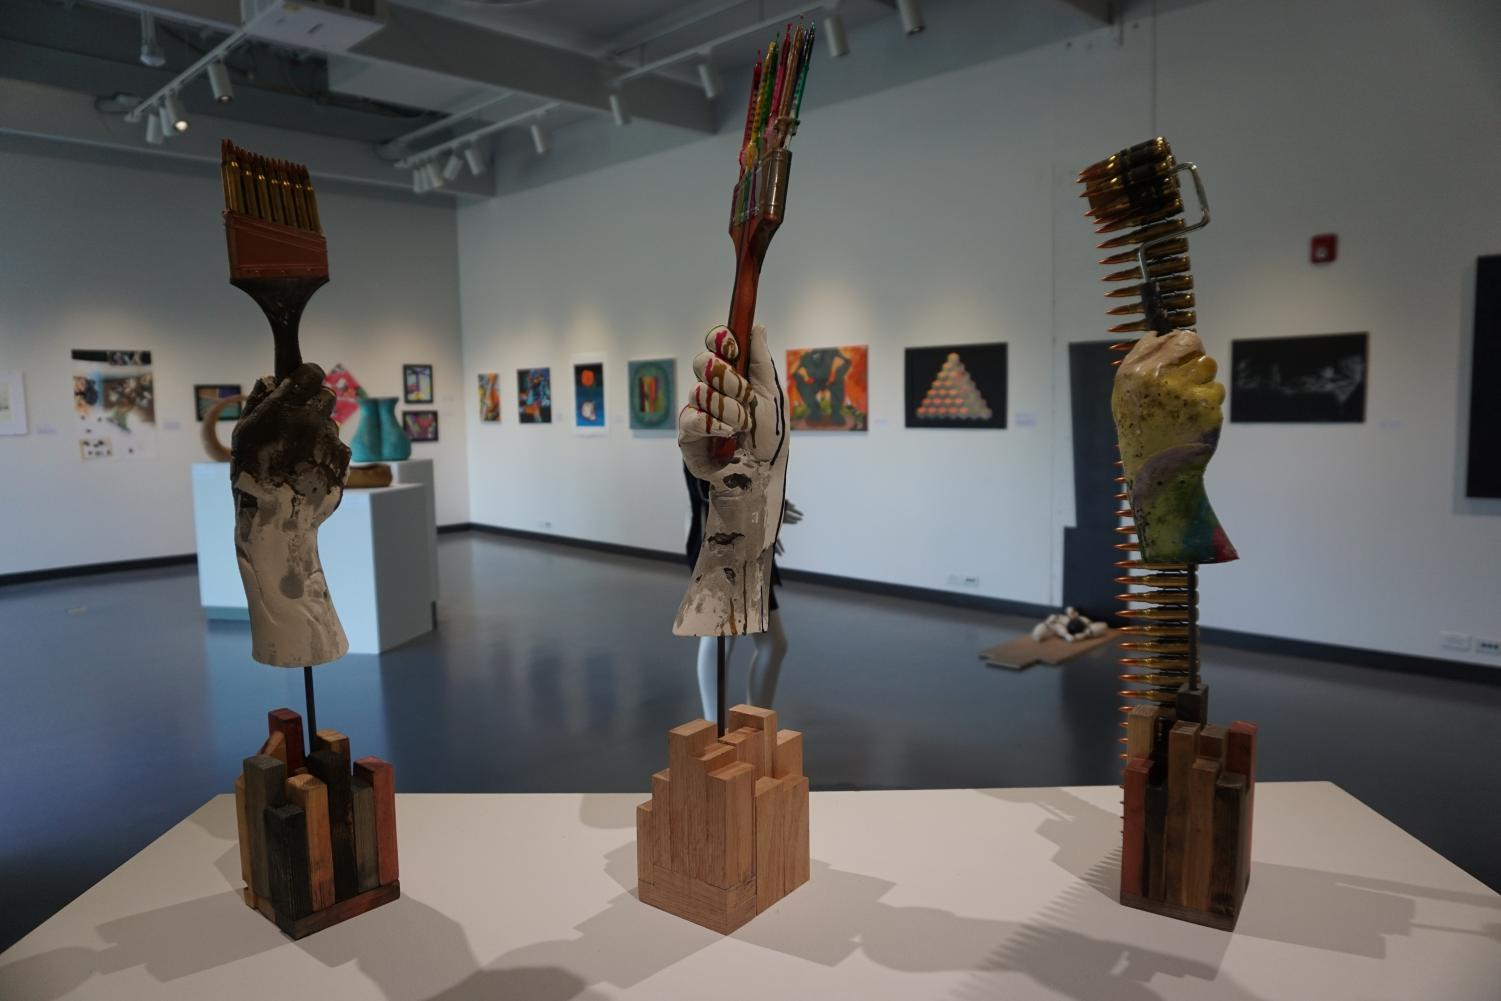 Lourans Michail's mixed media sculpture features a trio of fists holding weaponized art instruments. Artwork is titled